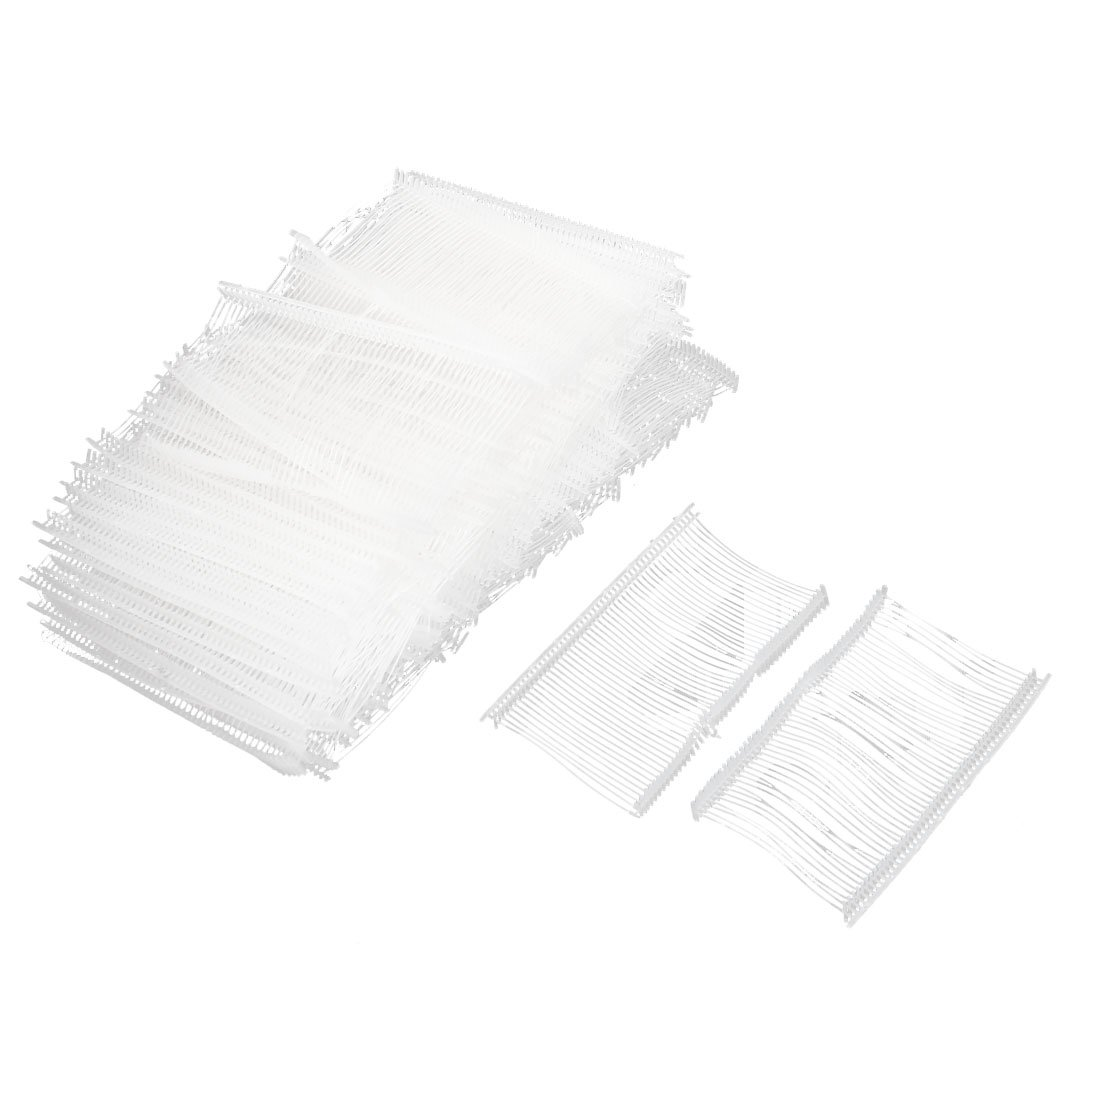 Clothes Label Rope Goods Price Tag Strip Line 5000pcs White